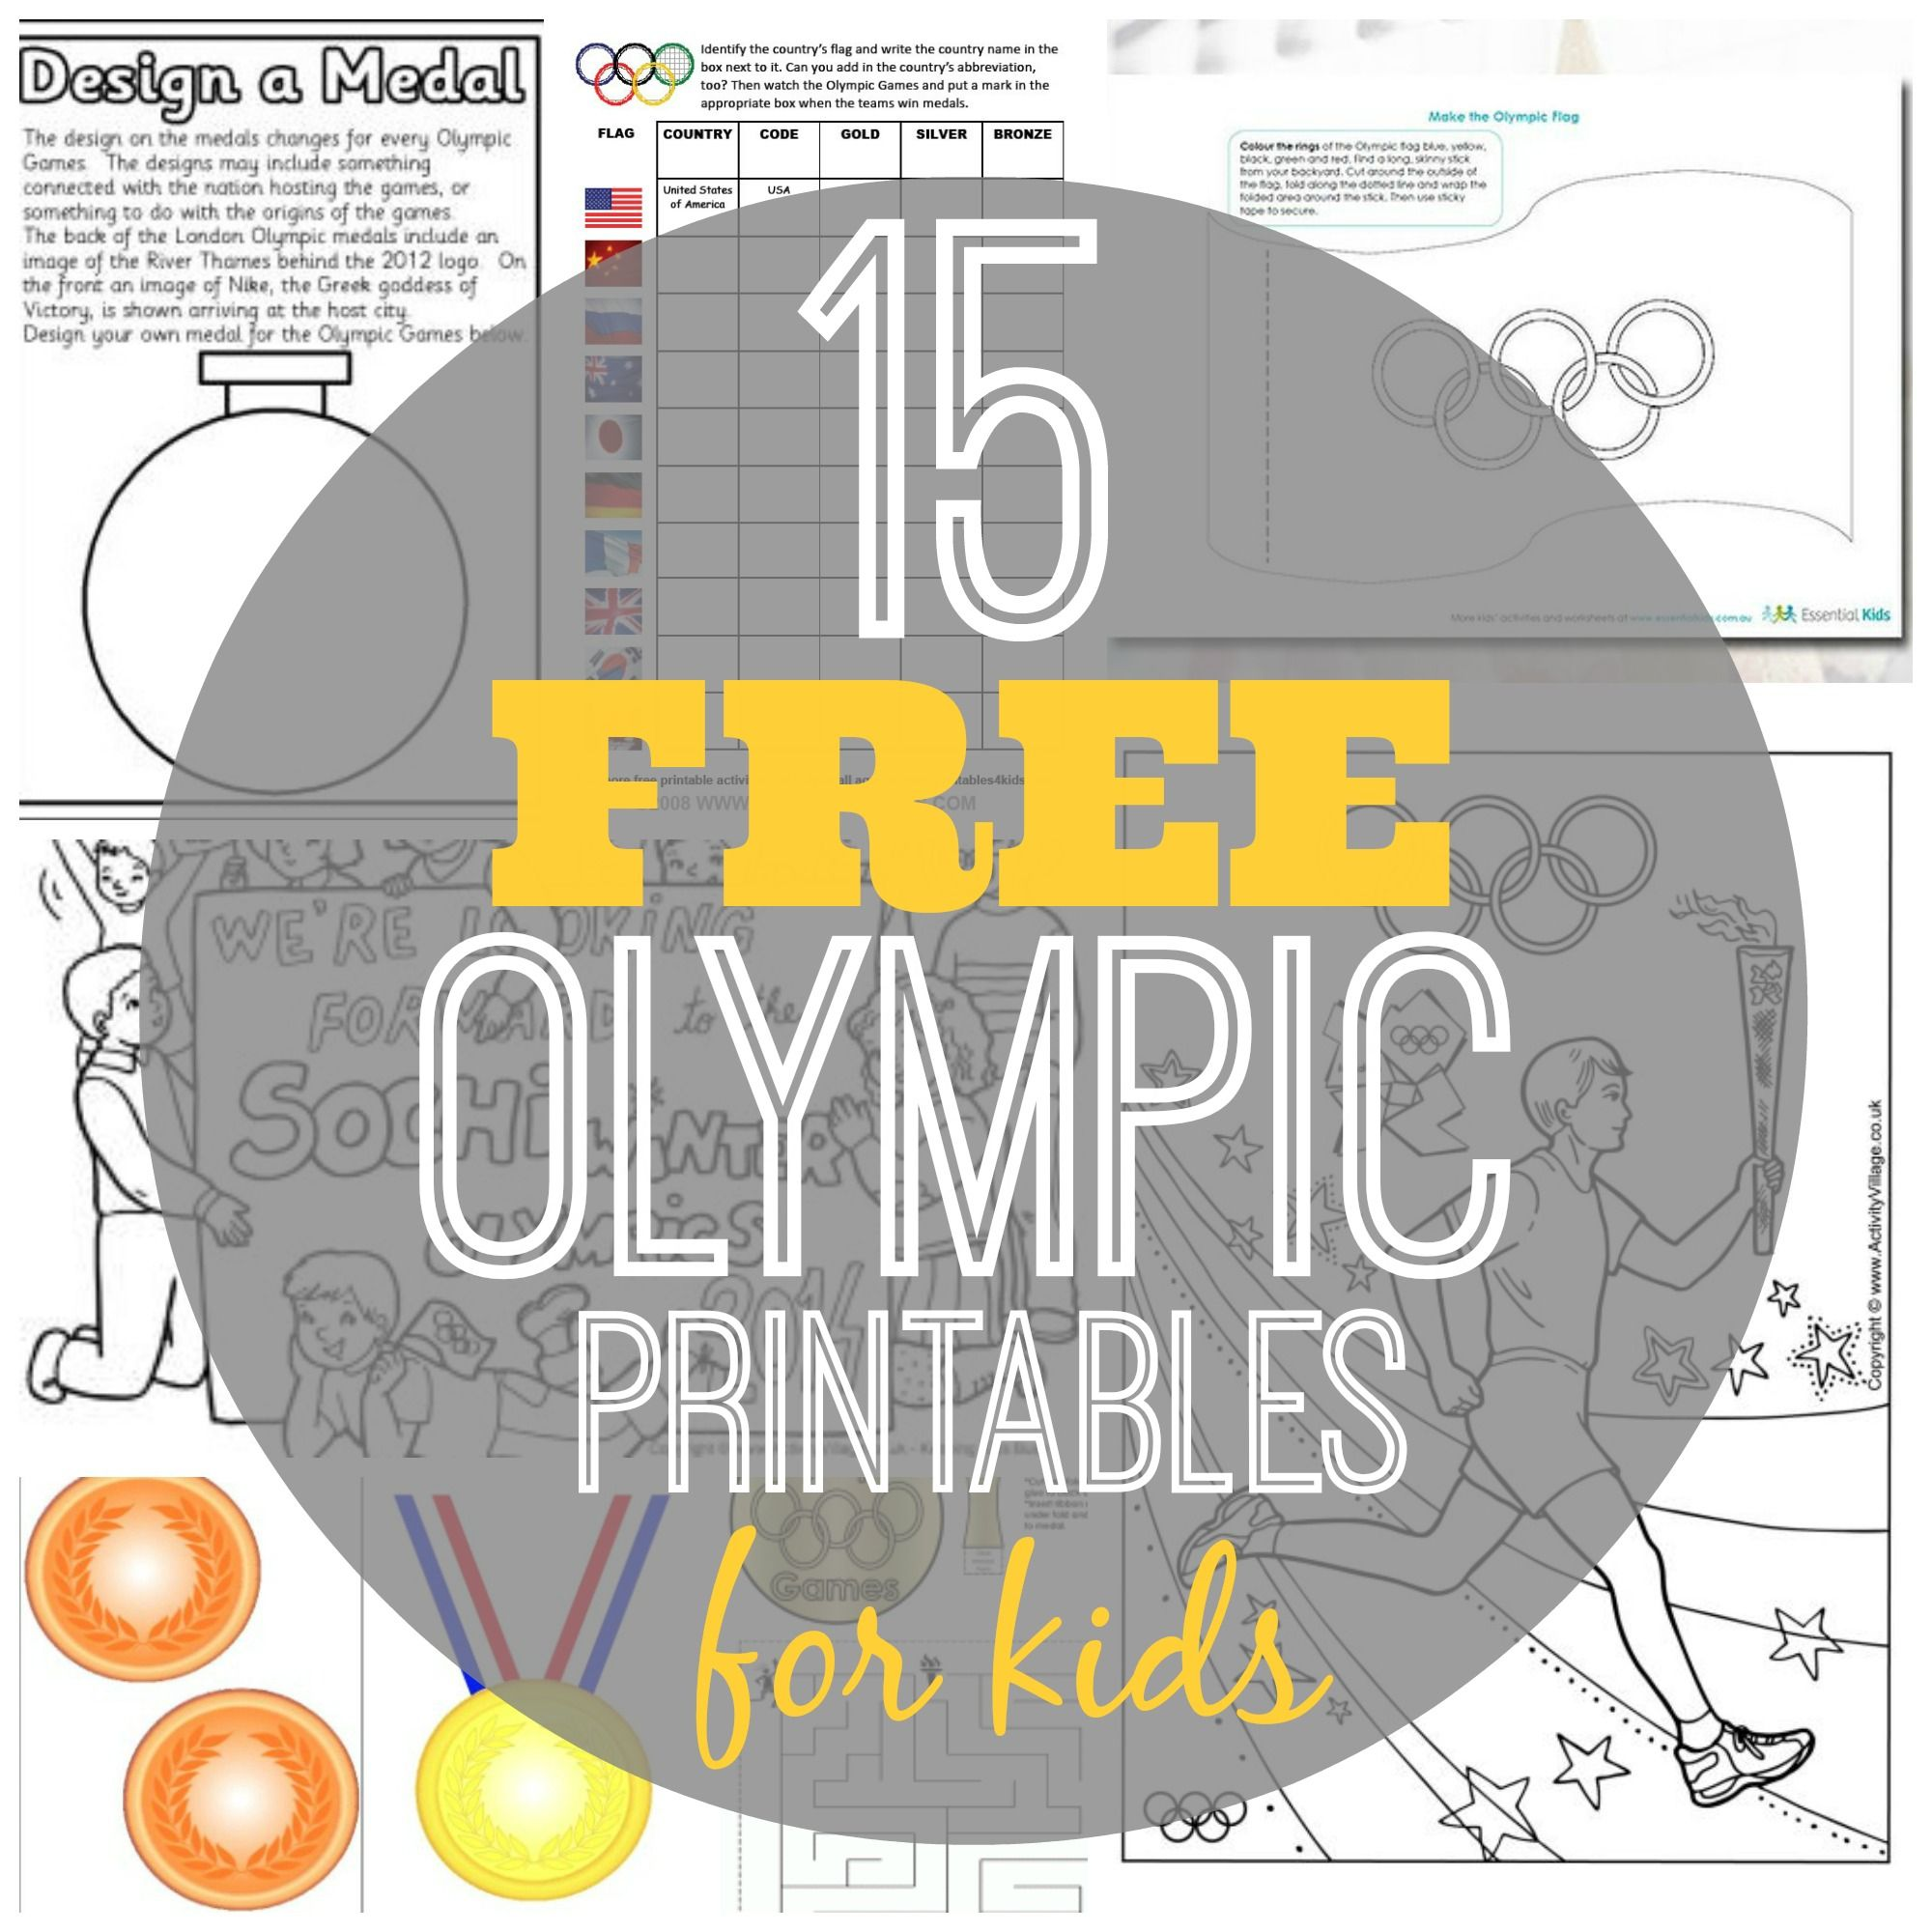 15 free olympic printables for kids creative indoor fun activities for kids olympic crafts. Black Bedroom Furniture Sets. Home Design Ideas